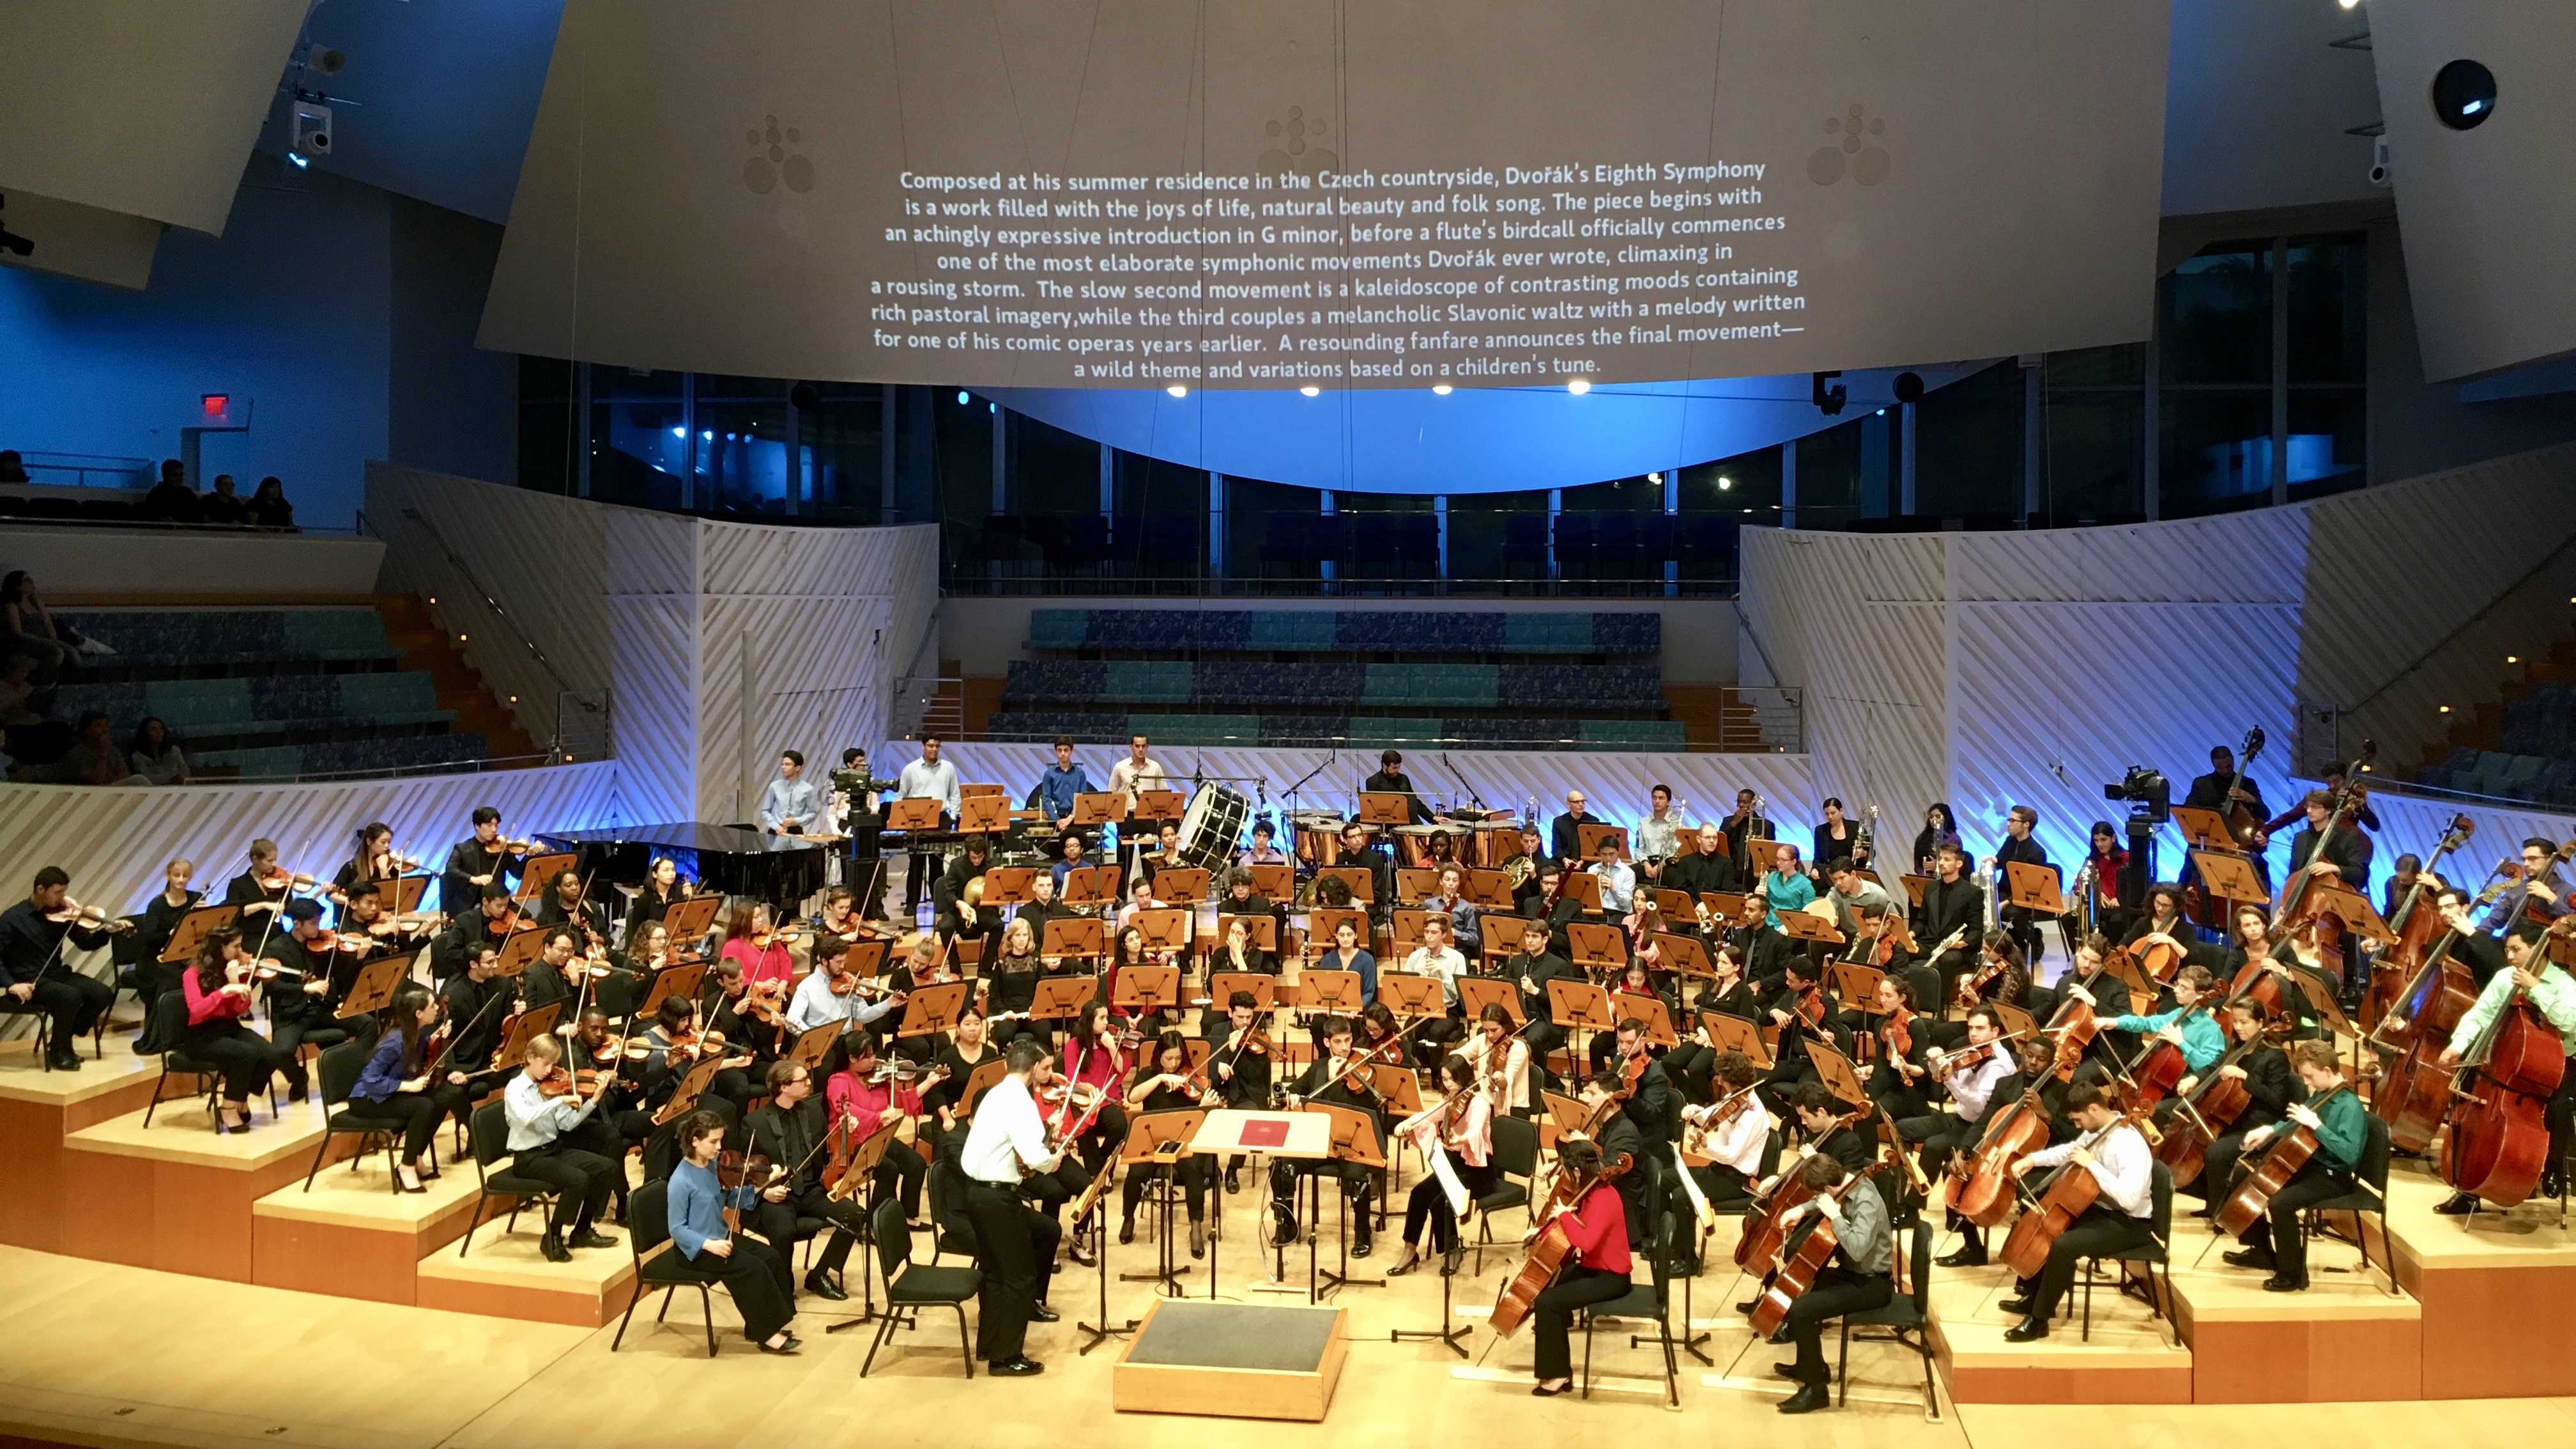 Notes for Dvorak's Eighth Symphony are projected above the New World Symphony musicians (photo: Brian Wise)